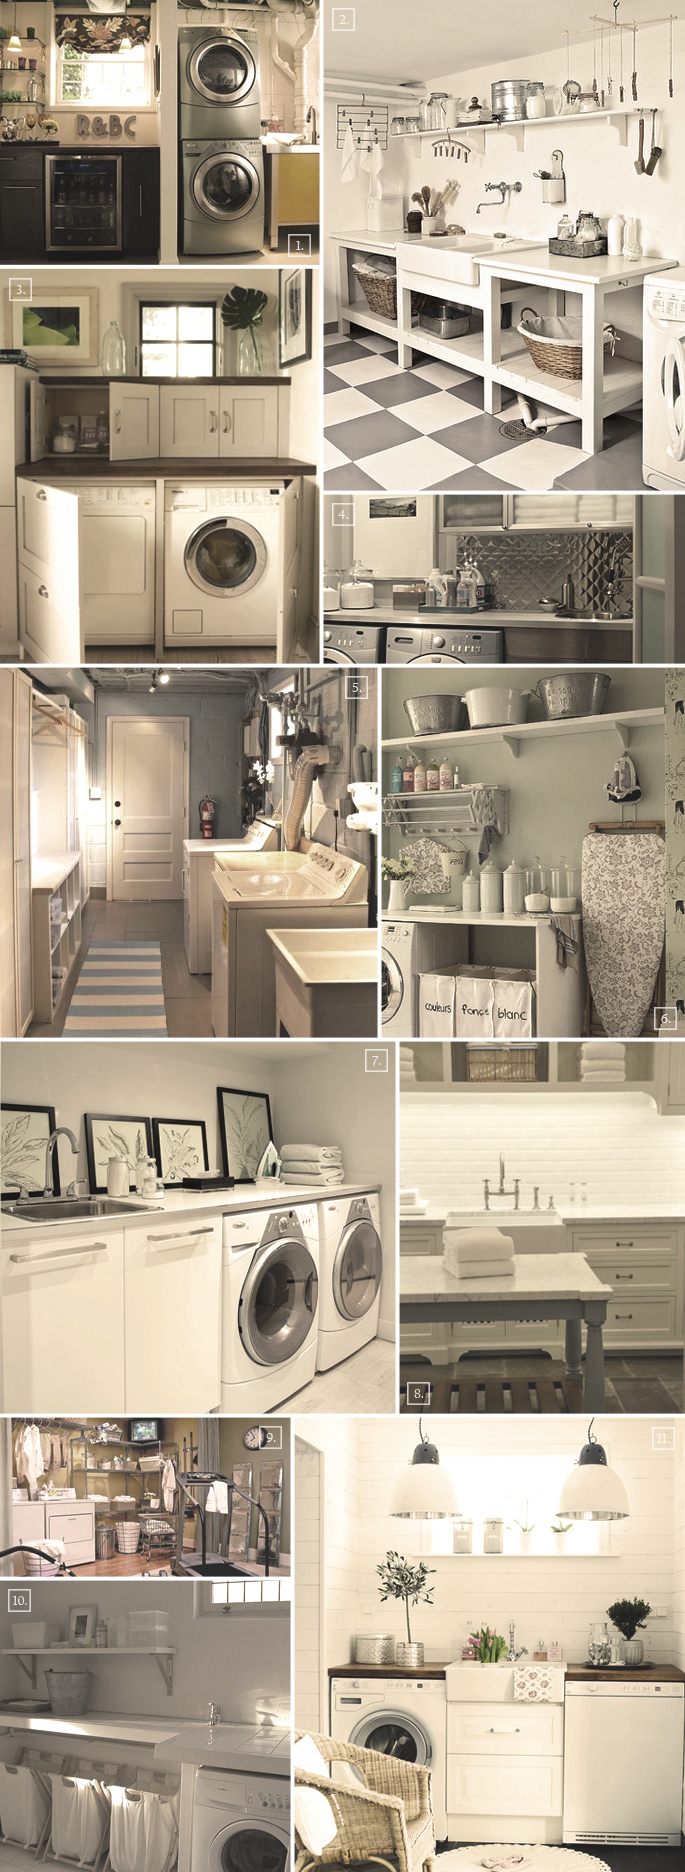 Design ideas for that perfect basement laundry room home tree atlas - Laundry ideas for small space decoration ...